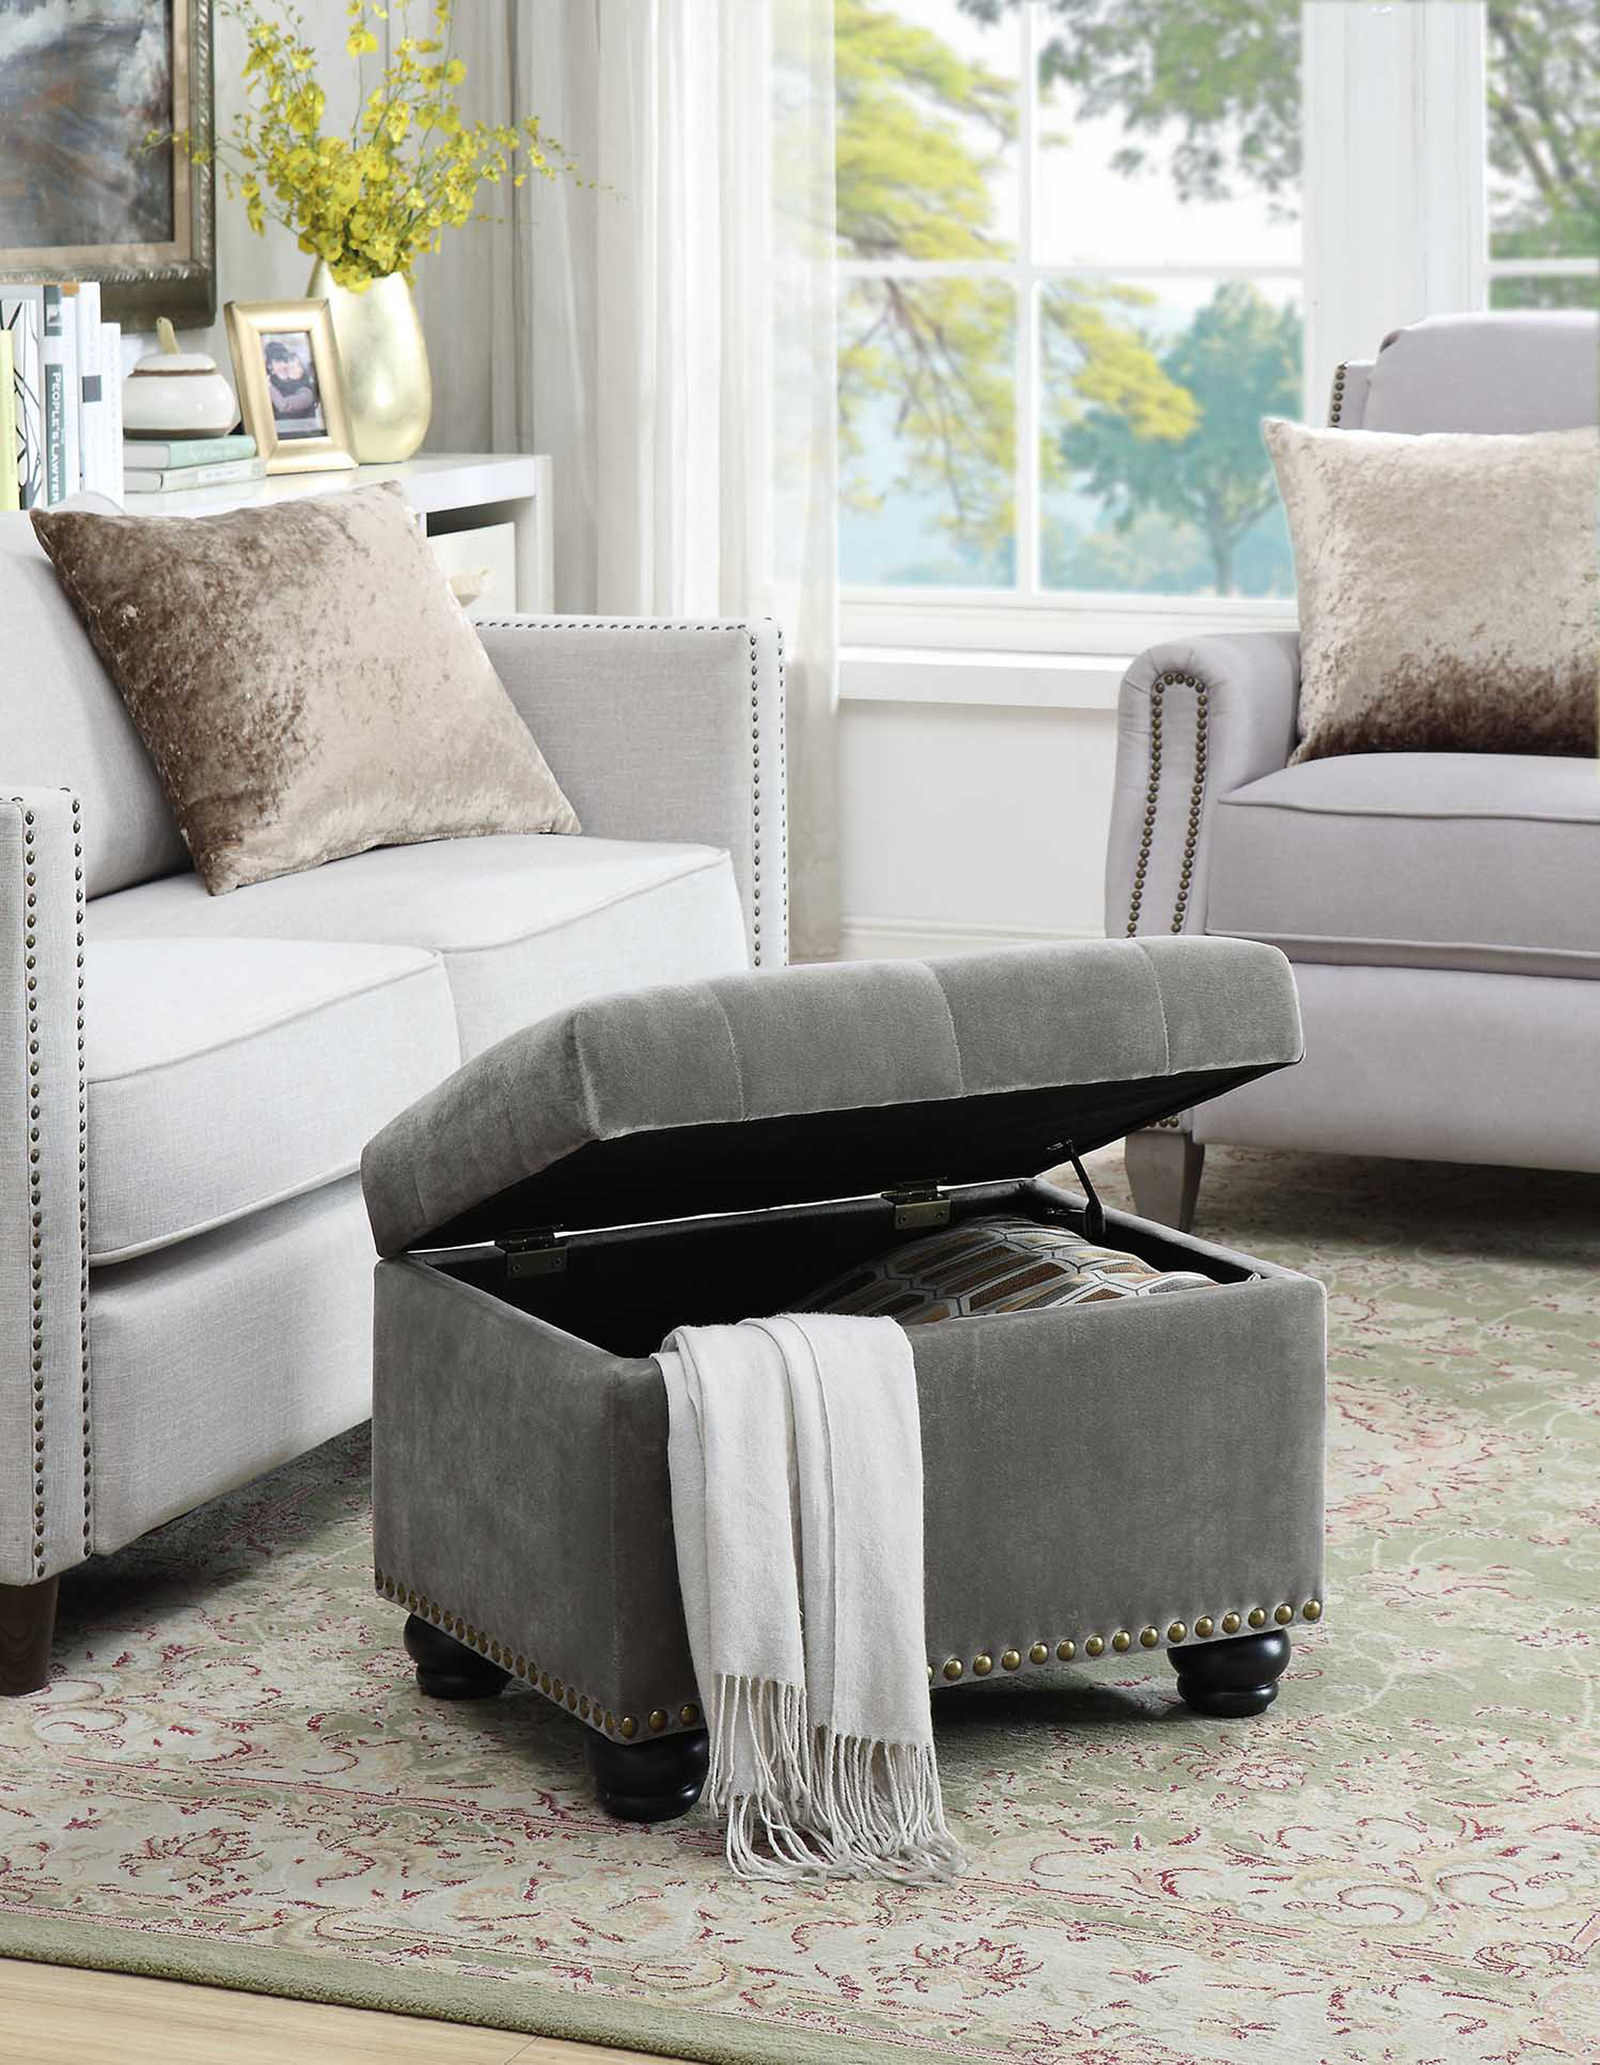 leather furniture 35 stylish pieces of furniture from walmart that only look 16633 | sub buzz 16633 1526489043 7